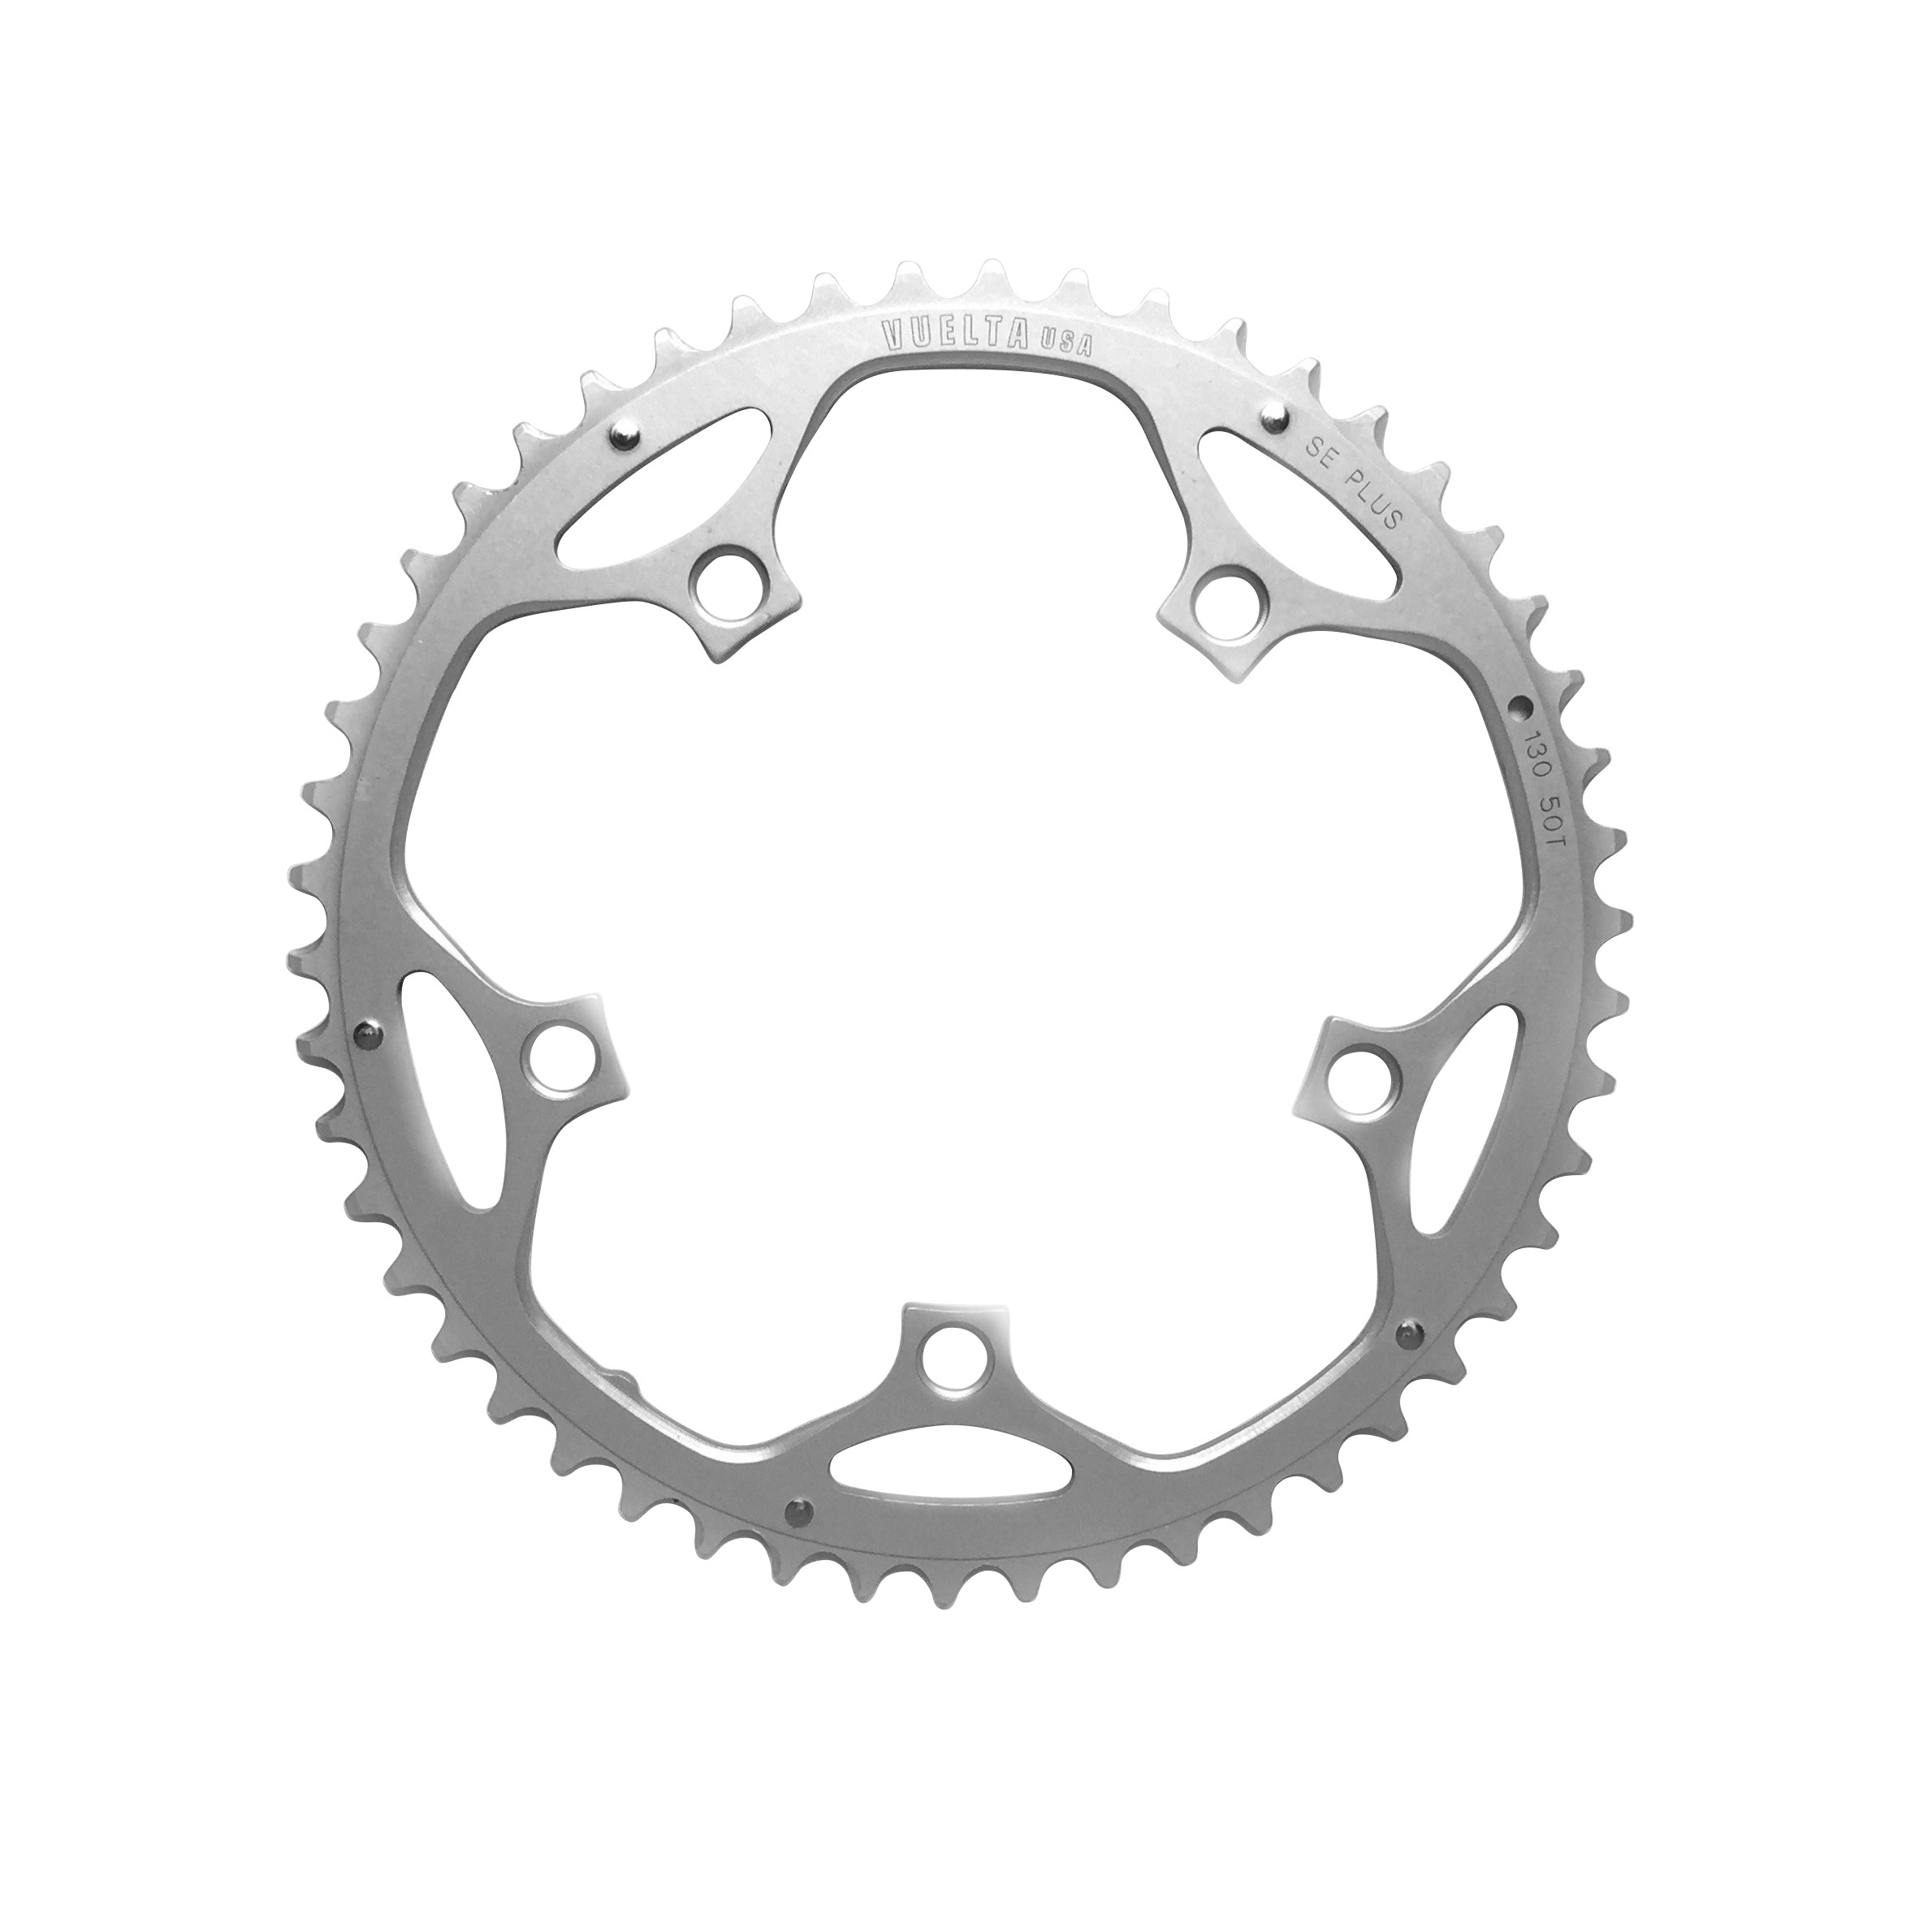 SE Plus 130mm/BCD 40T Chainring, Silver